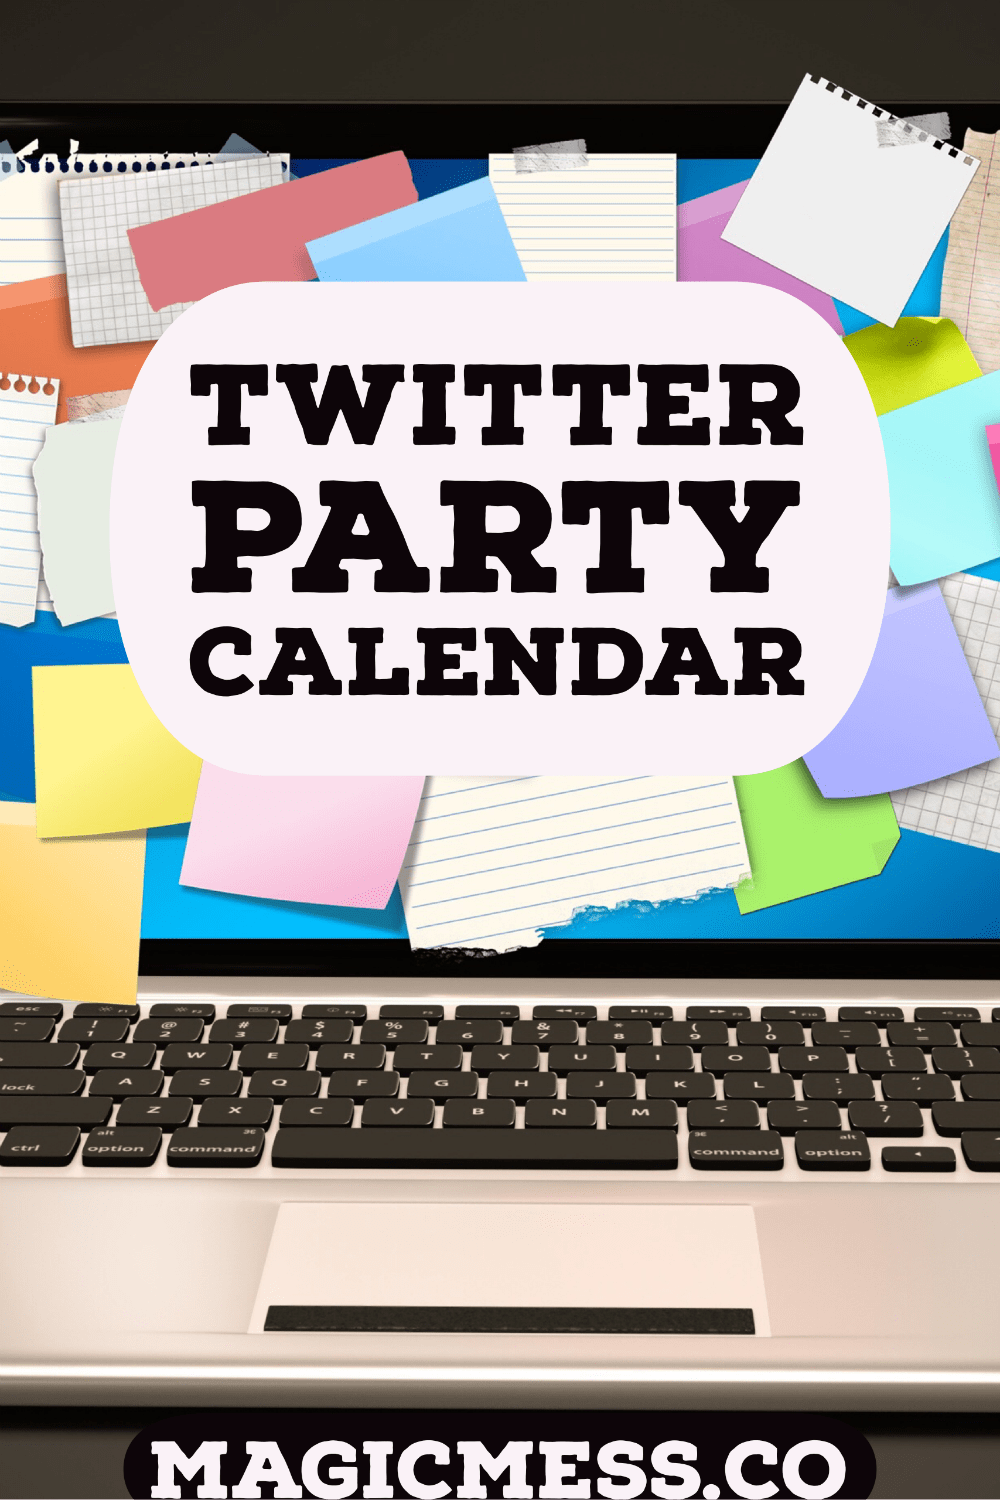 twitter party calender